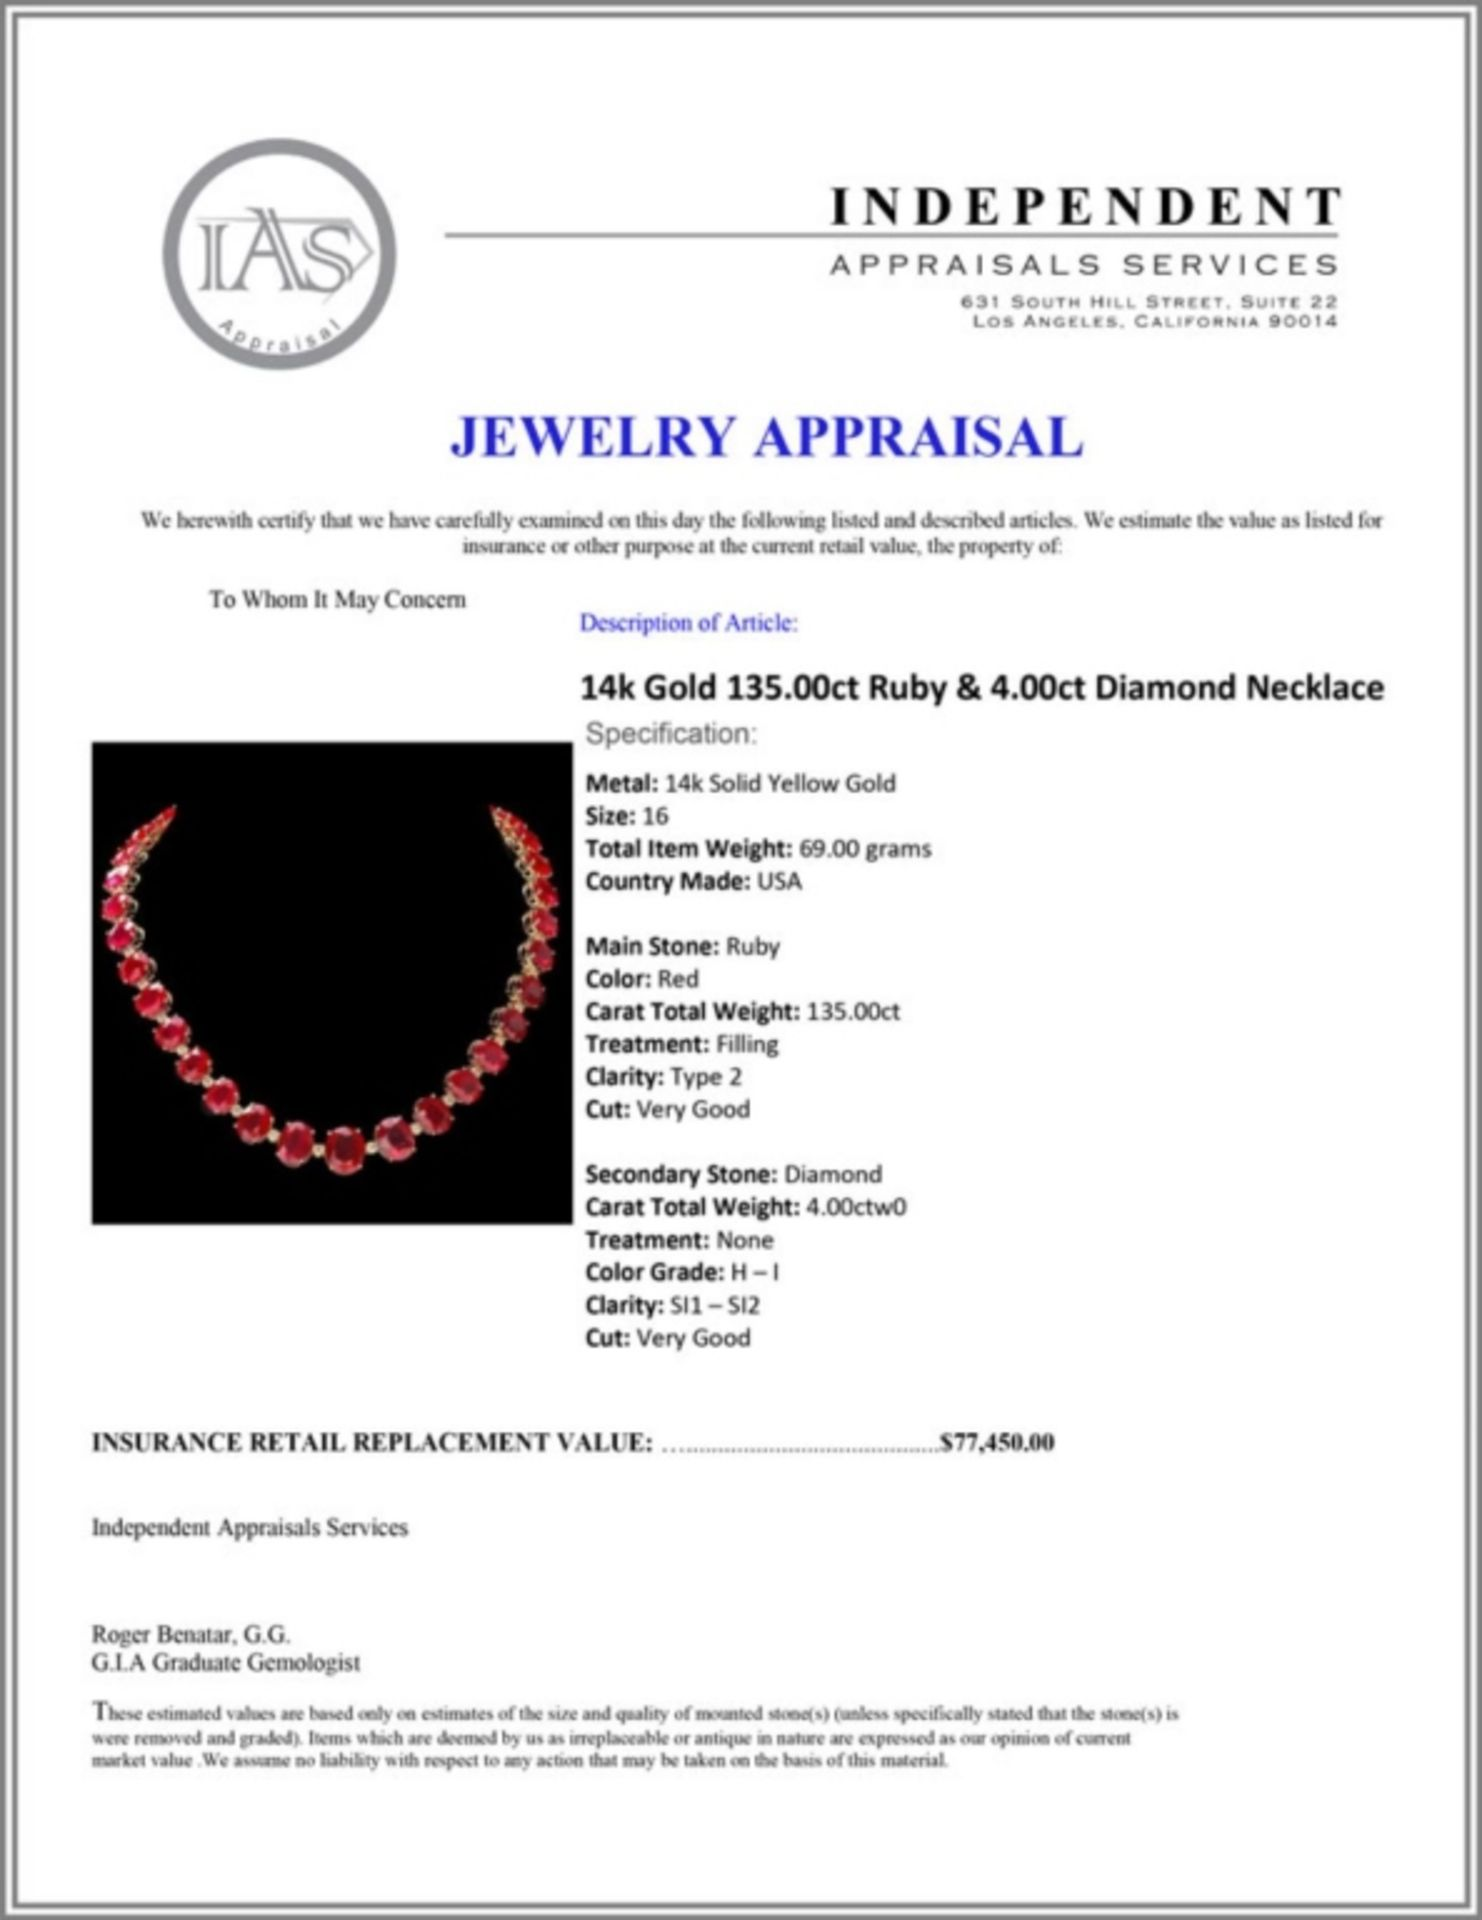 `14k Gold 135.00ct Ruby & 4.00ct Diamond Necklace - Image 4 of 4